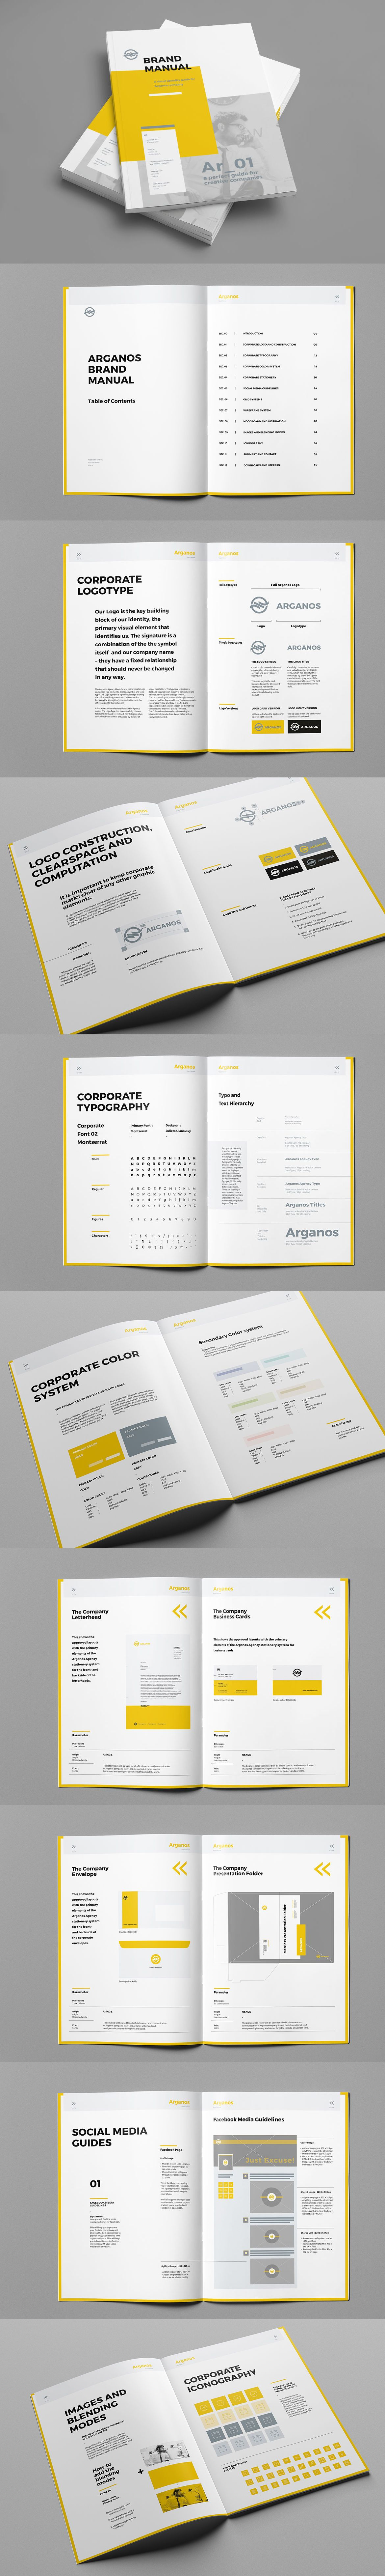 Brand Manual Template InDesign INDD - 48 Pages, A4 | Diseño Gráfico ...